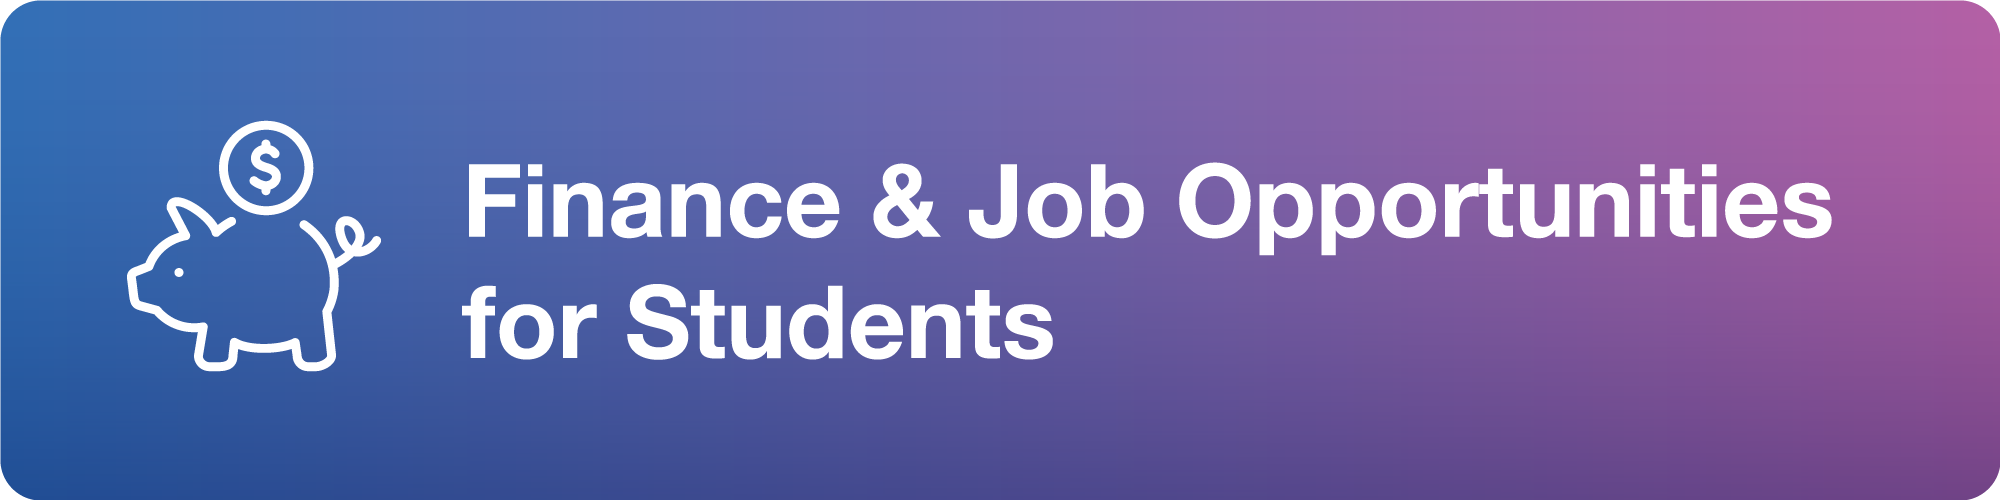 Finance & Job Opportunities for students